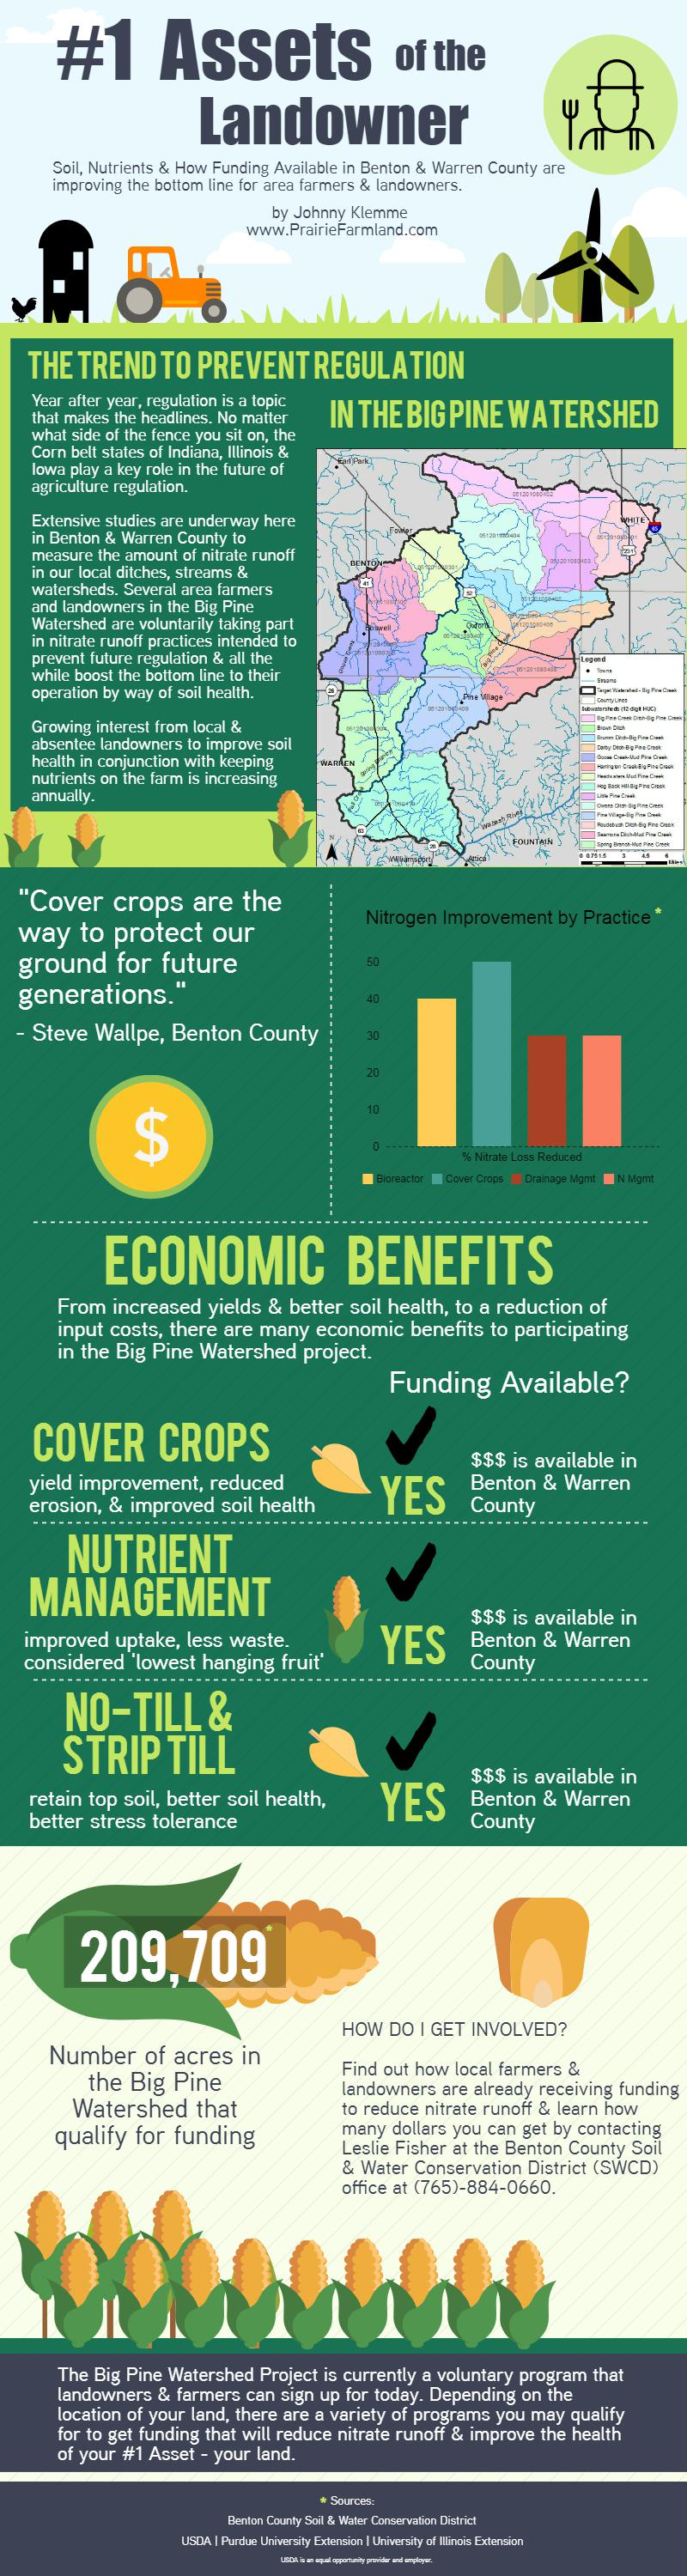 nrcs-funding_20148329_f8c3f6e3ee9a7afba881e1f3b5da7dfe18fc906d  Big Pine Watershed, Voluntary Prevention of Farm Regulation nrcs funding 20148329 f8c3f6e3ee9a7afba881e1f3b5da7dfe18fc906d